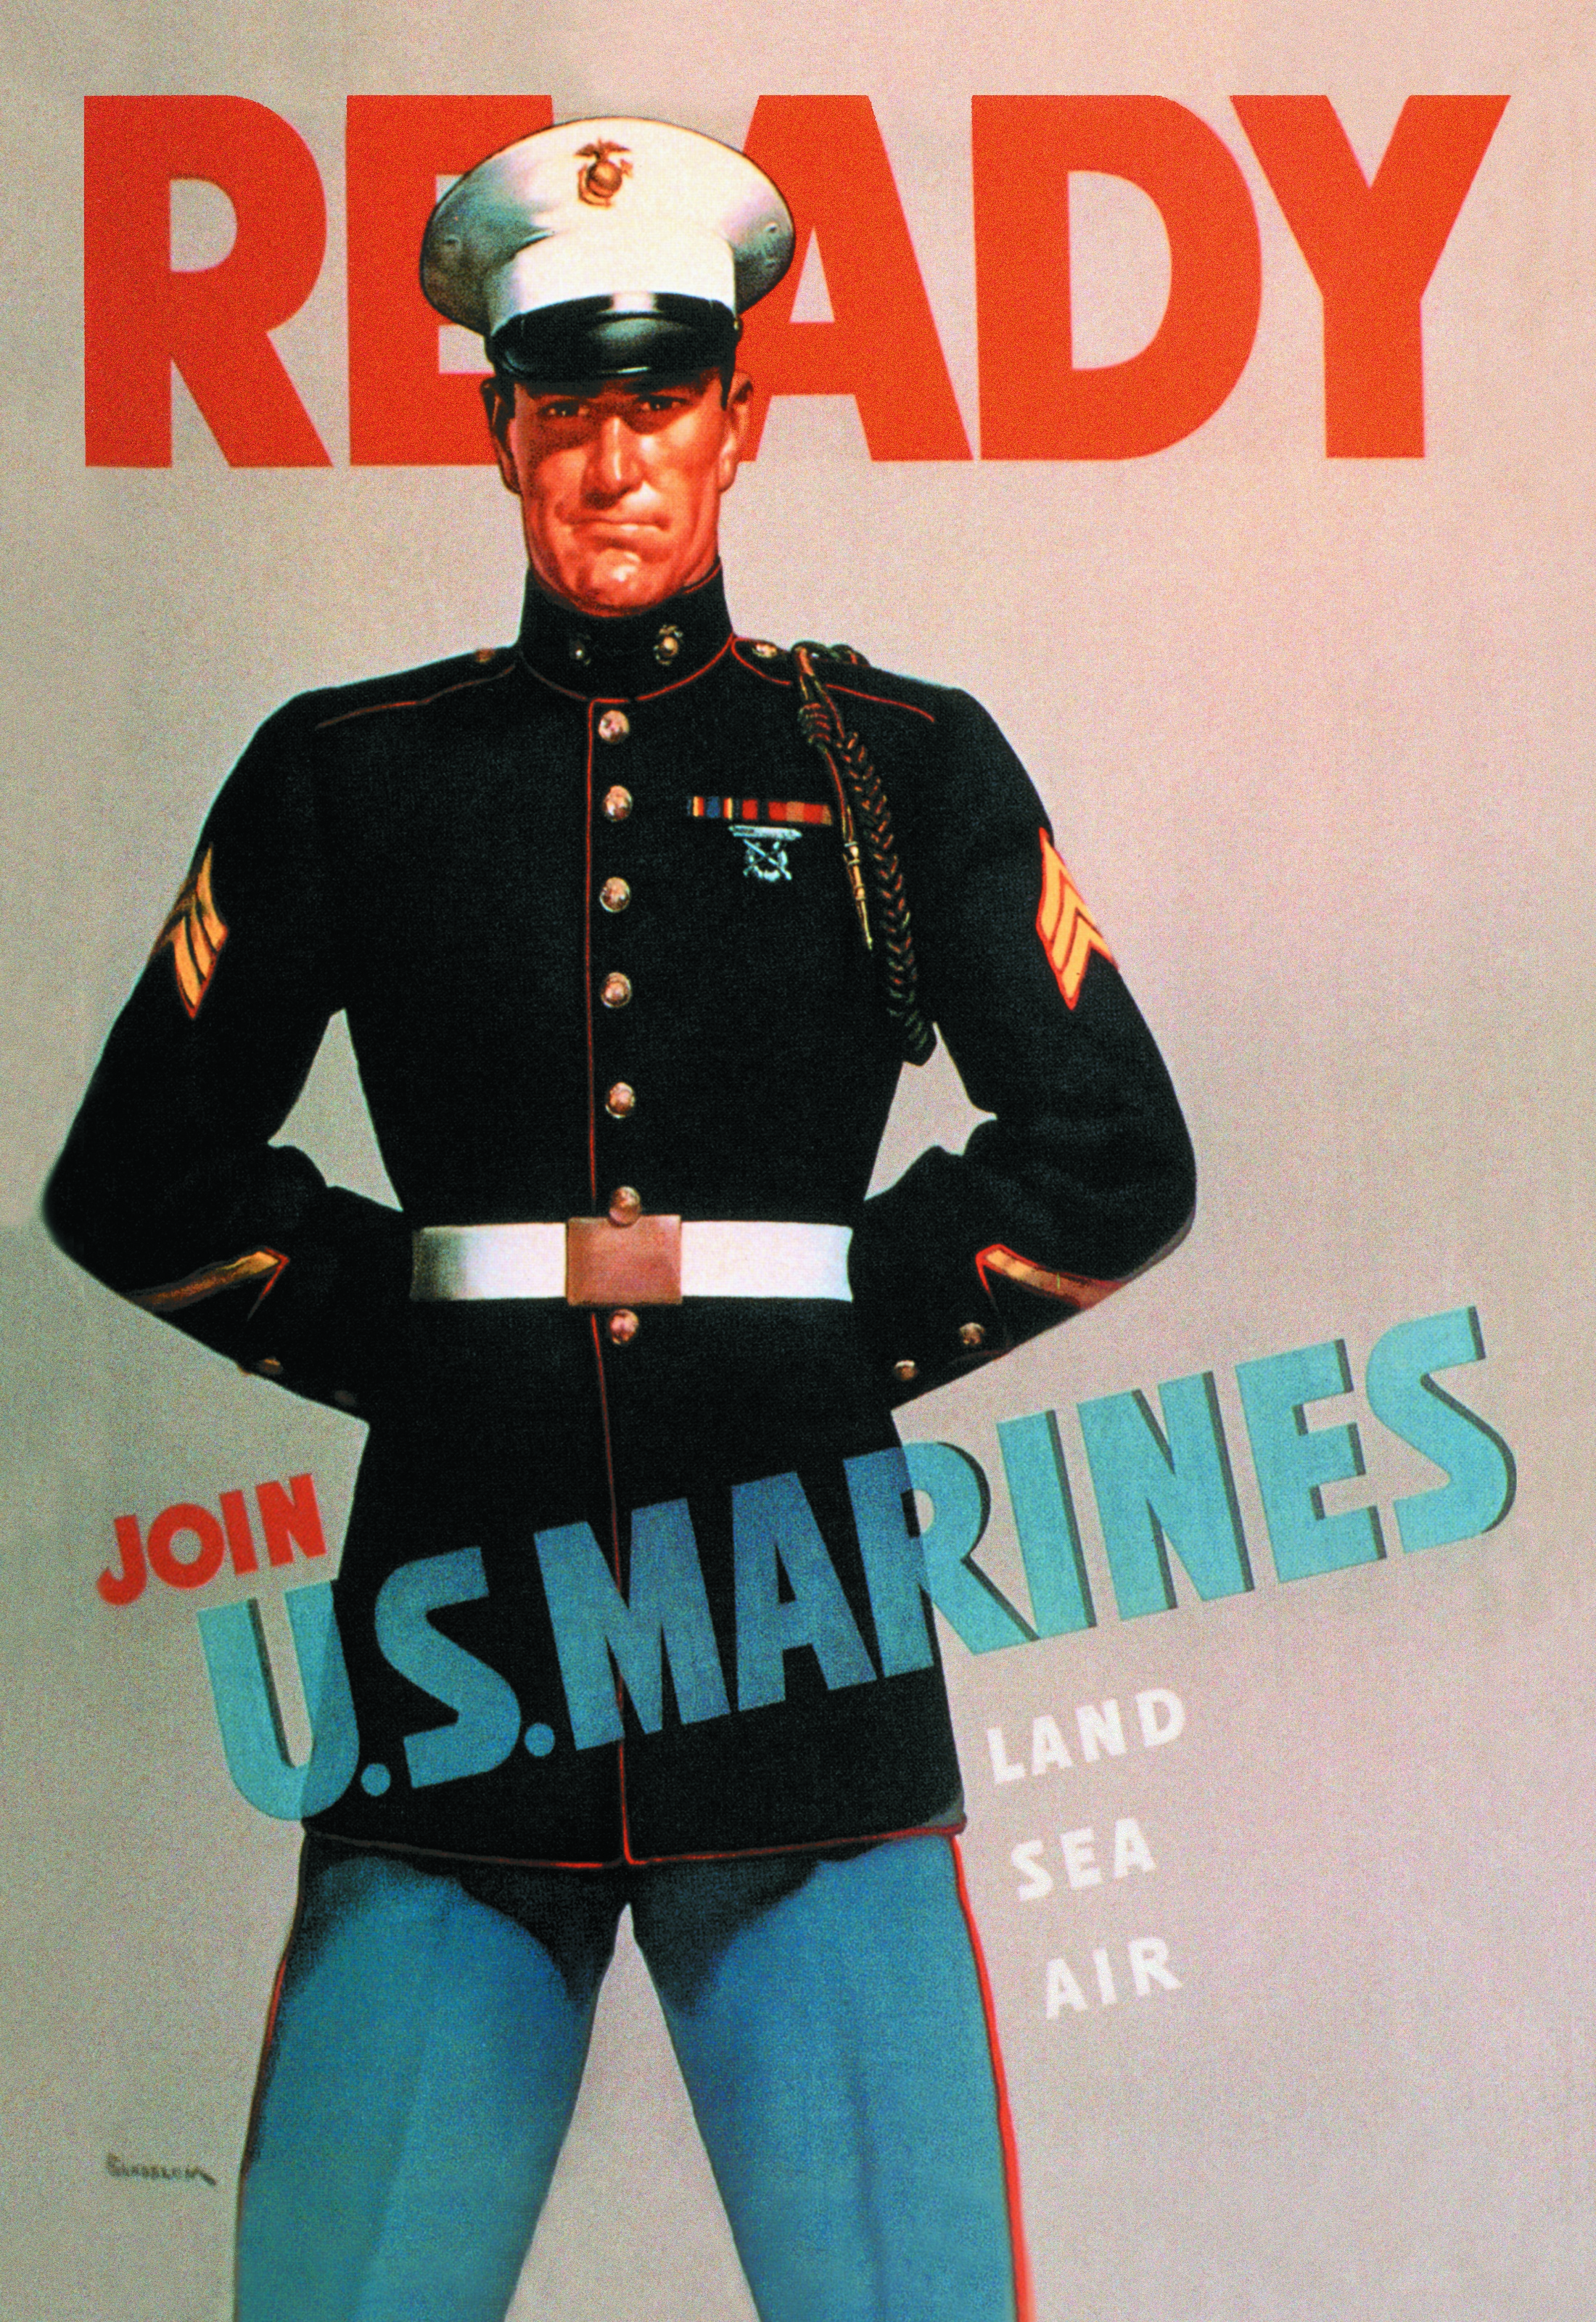 20th century  U.S. Marines recruitment poster